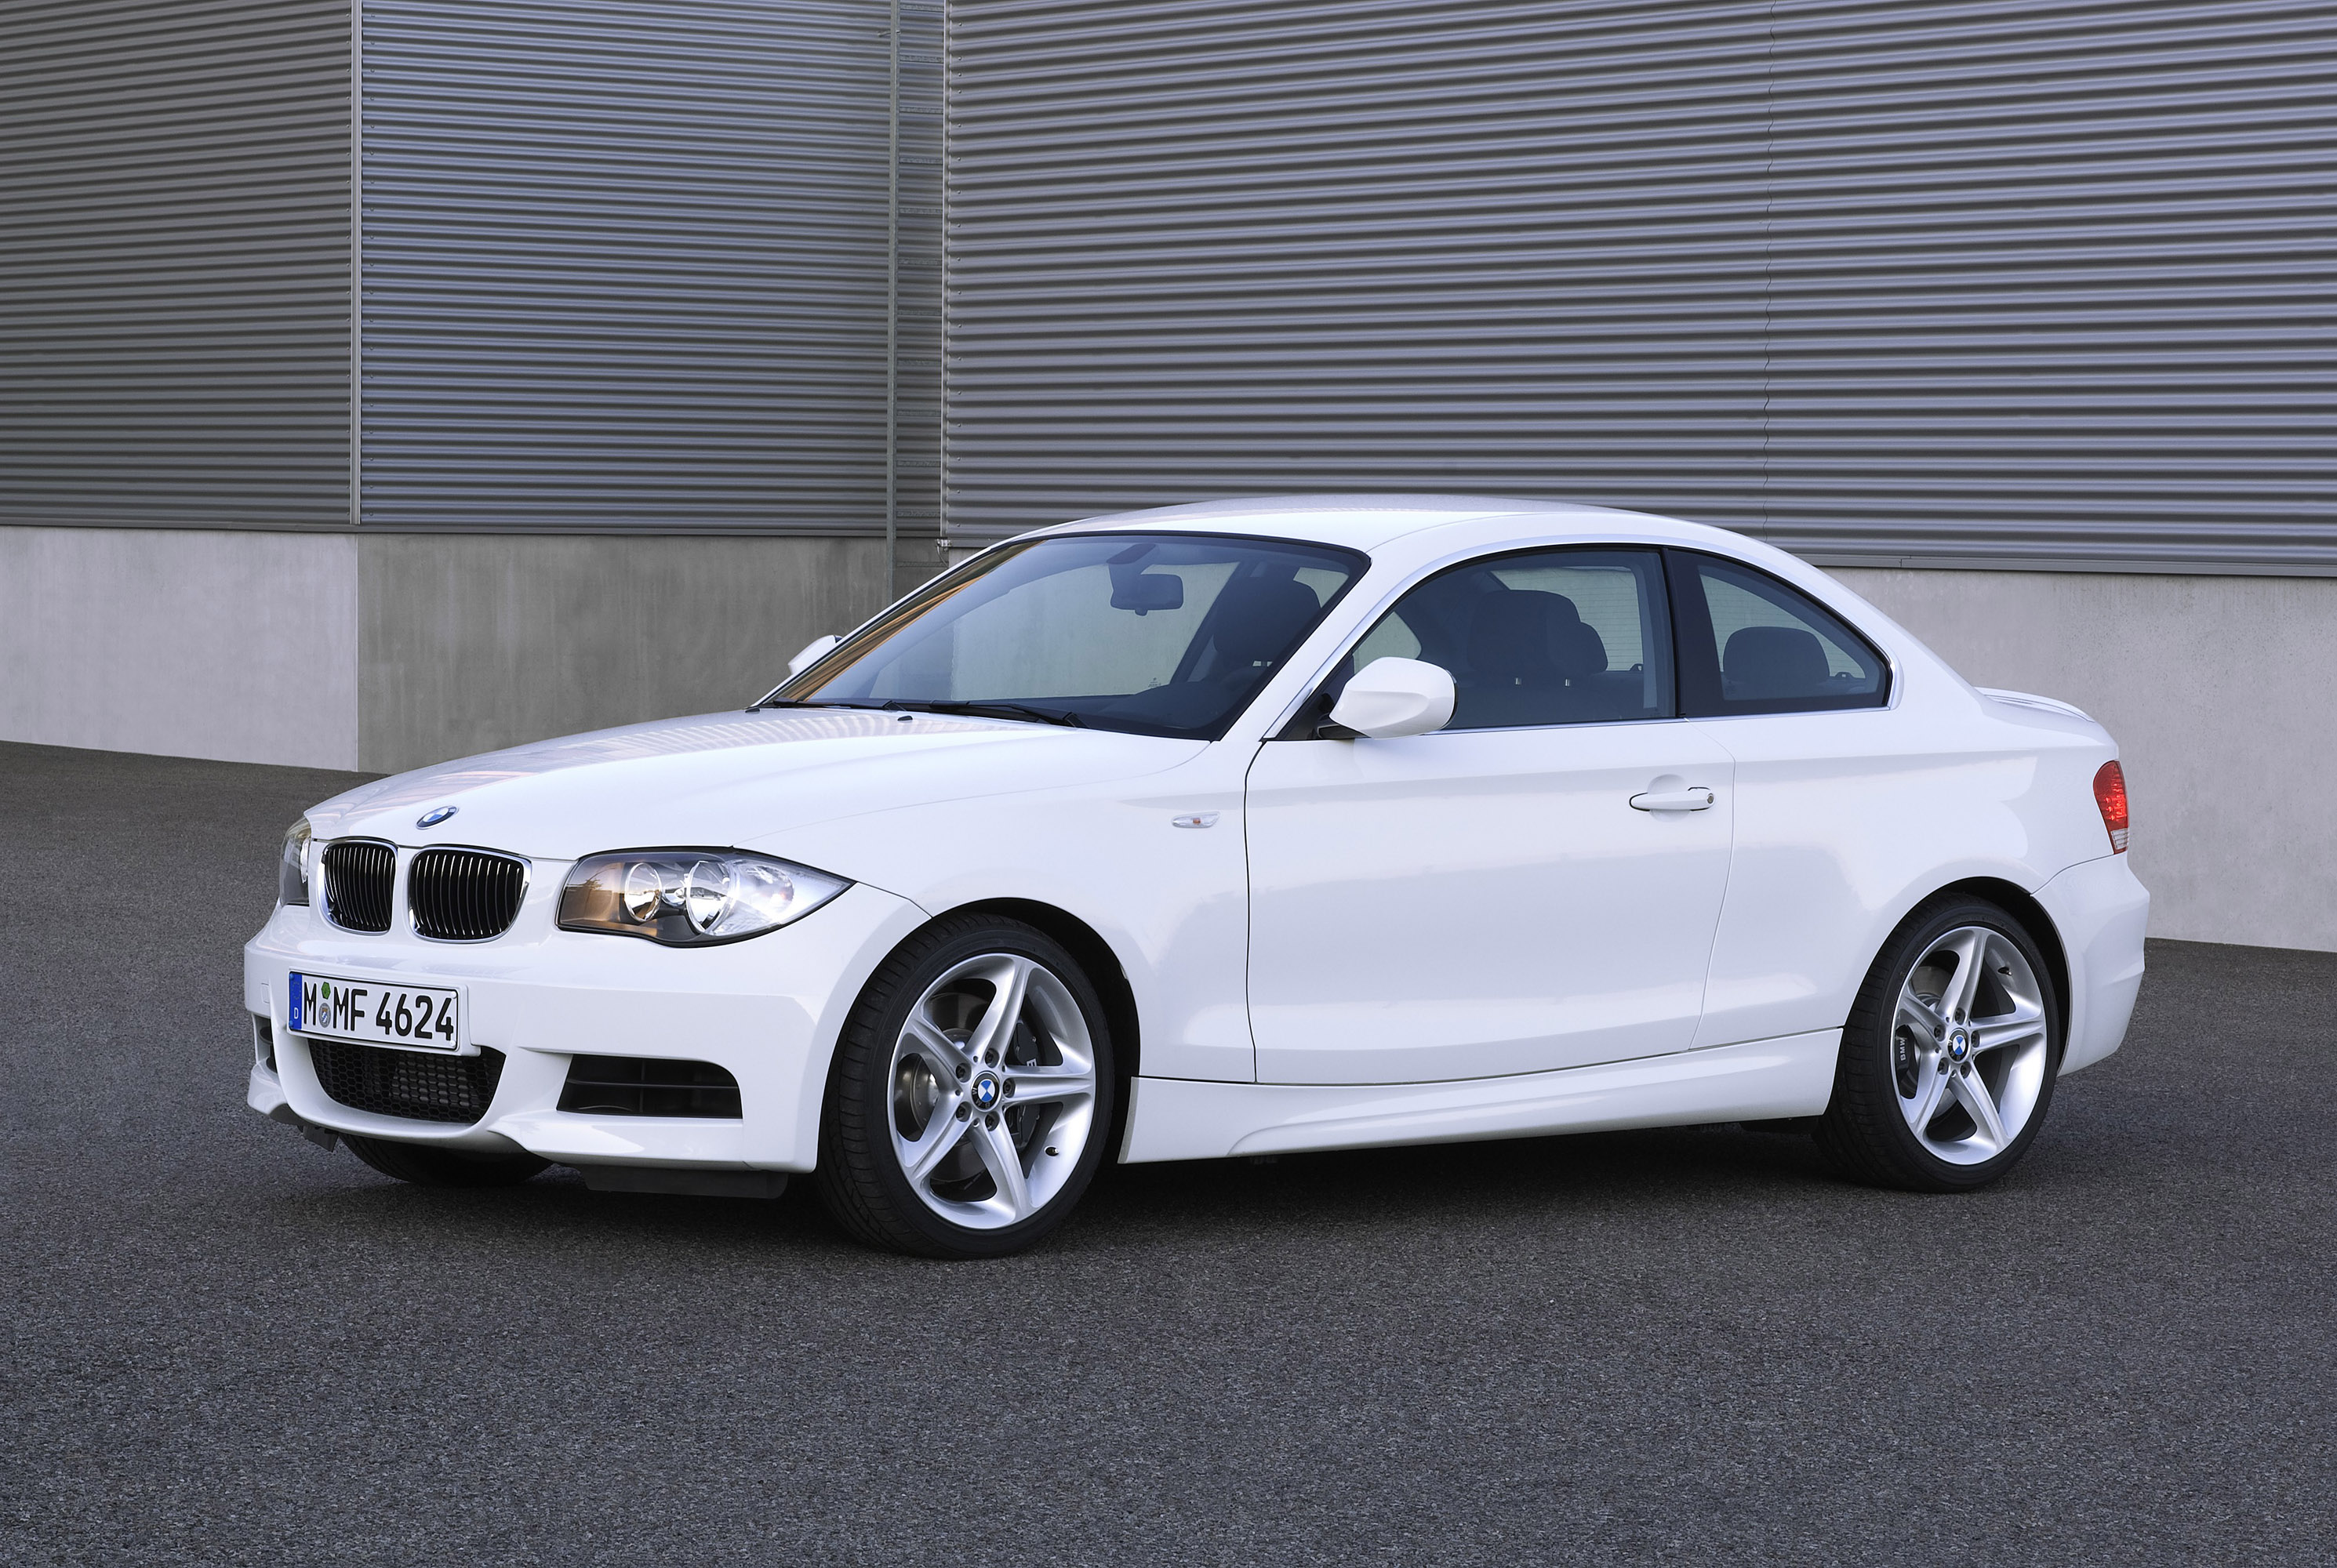 2007 Bmw 1 Series E82 135i Coupe Picture 37983